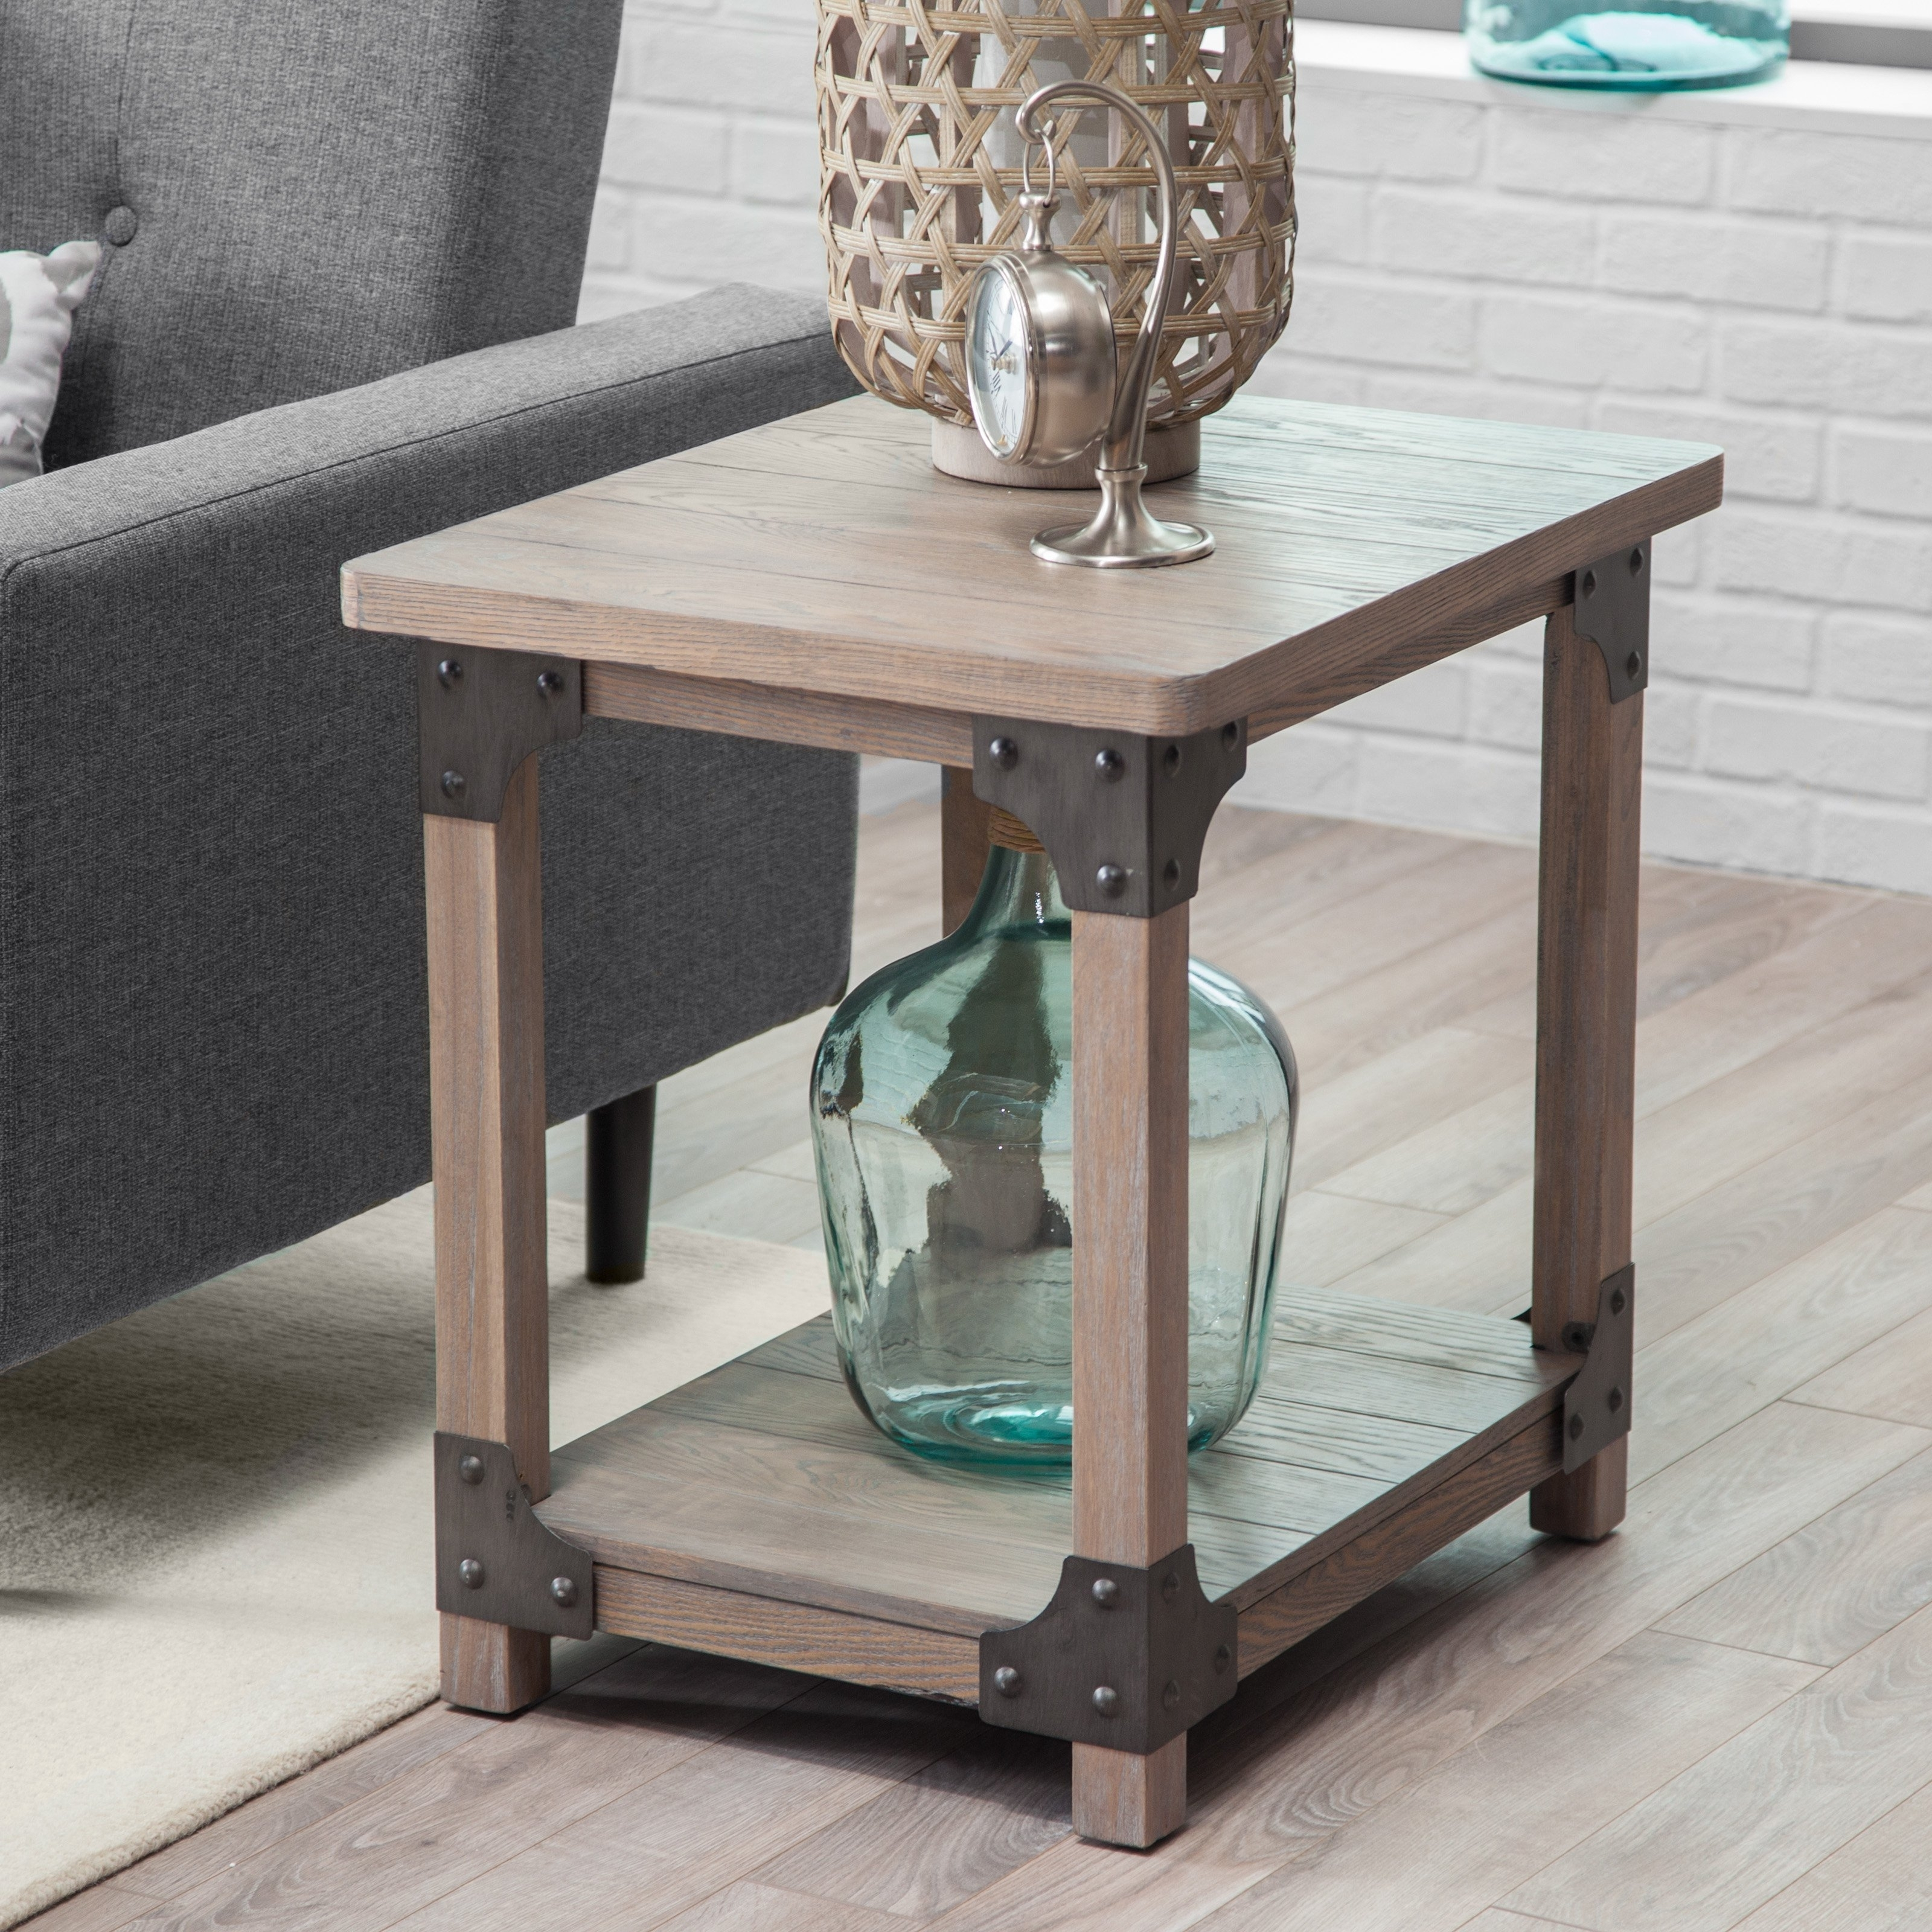 Home Design Ideas Extraordinary Belham Living Jamestown Rustic for Modern Rustic Coffee Tables (Image 7 of 30)